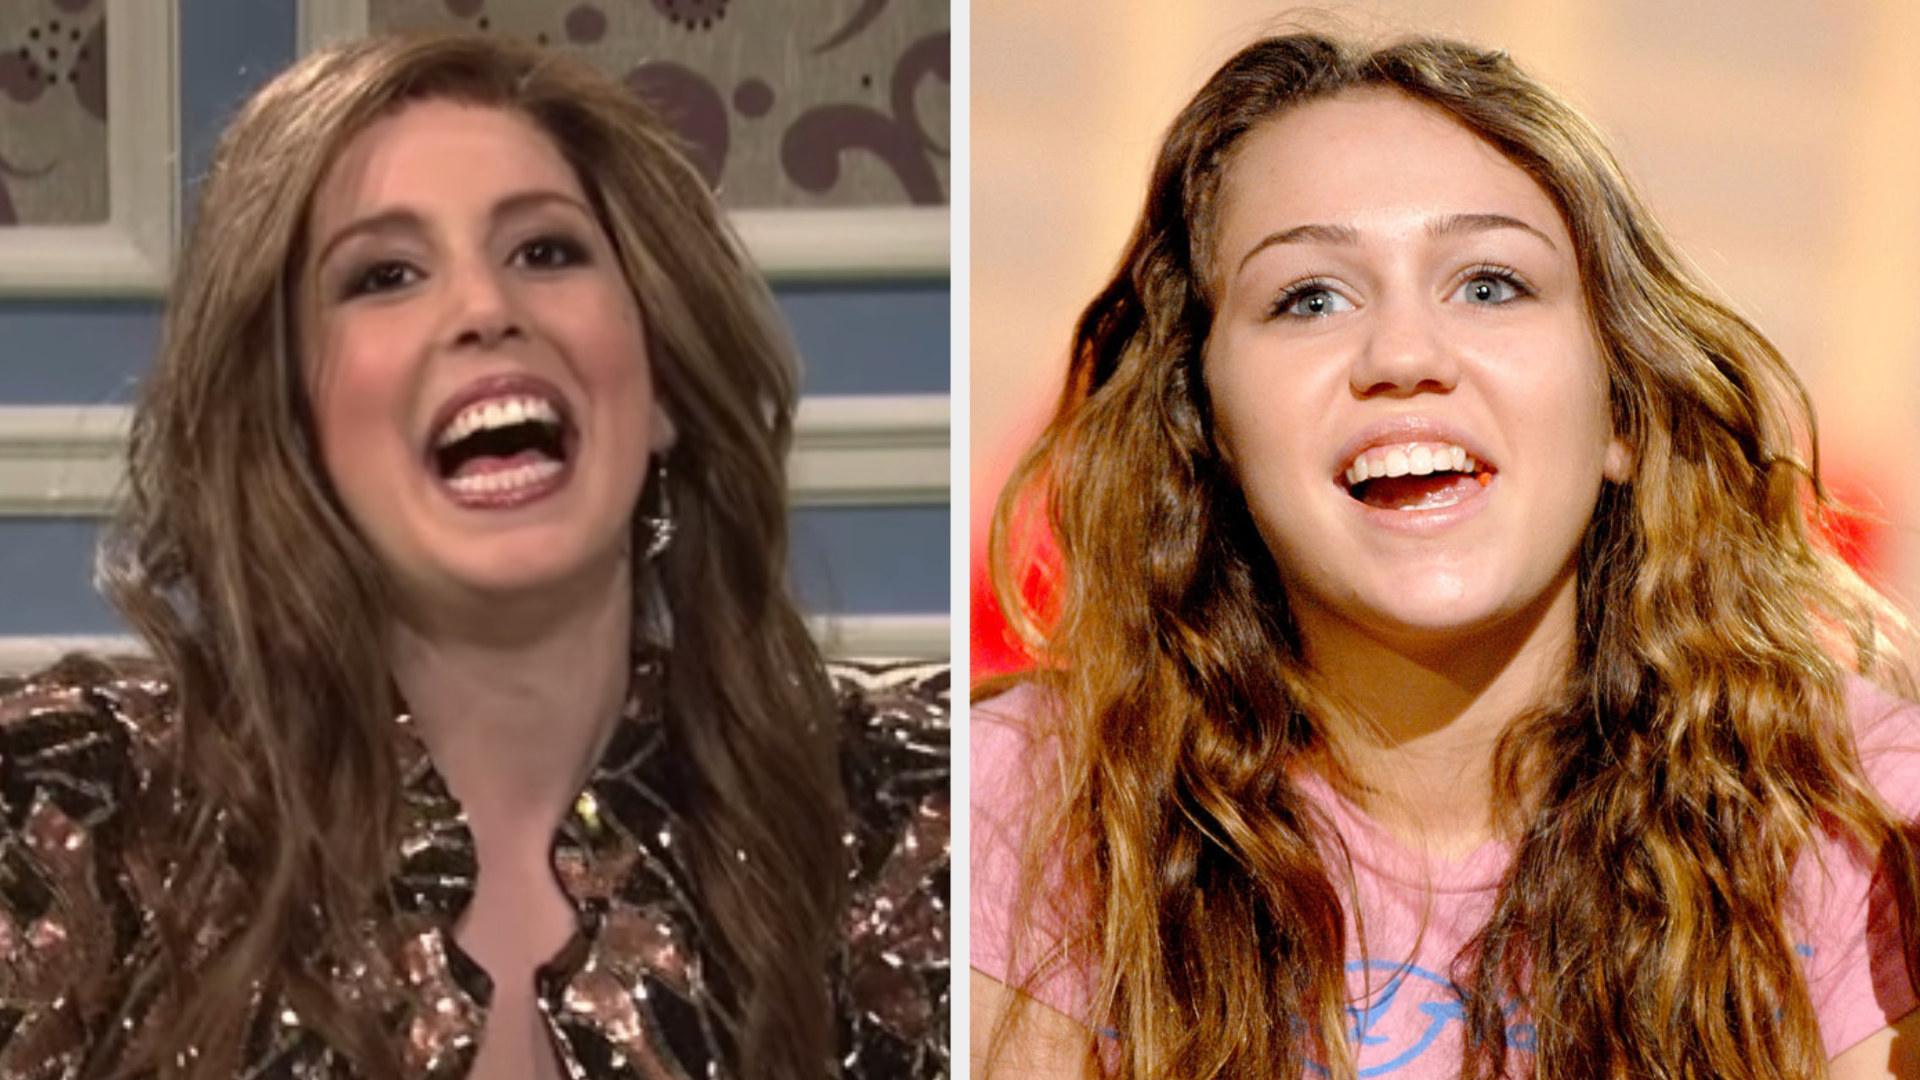 Vanessa Bayer with long brown hair side by side with a young Miley Cyrus